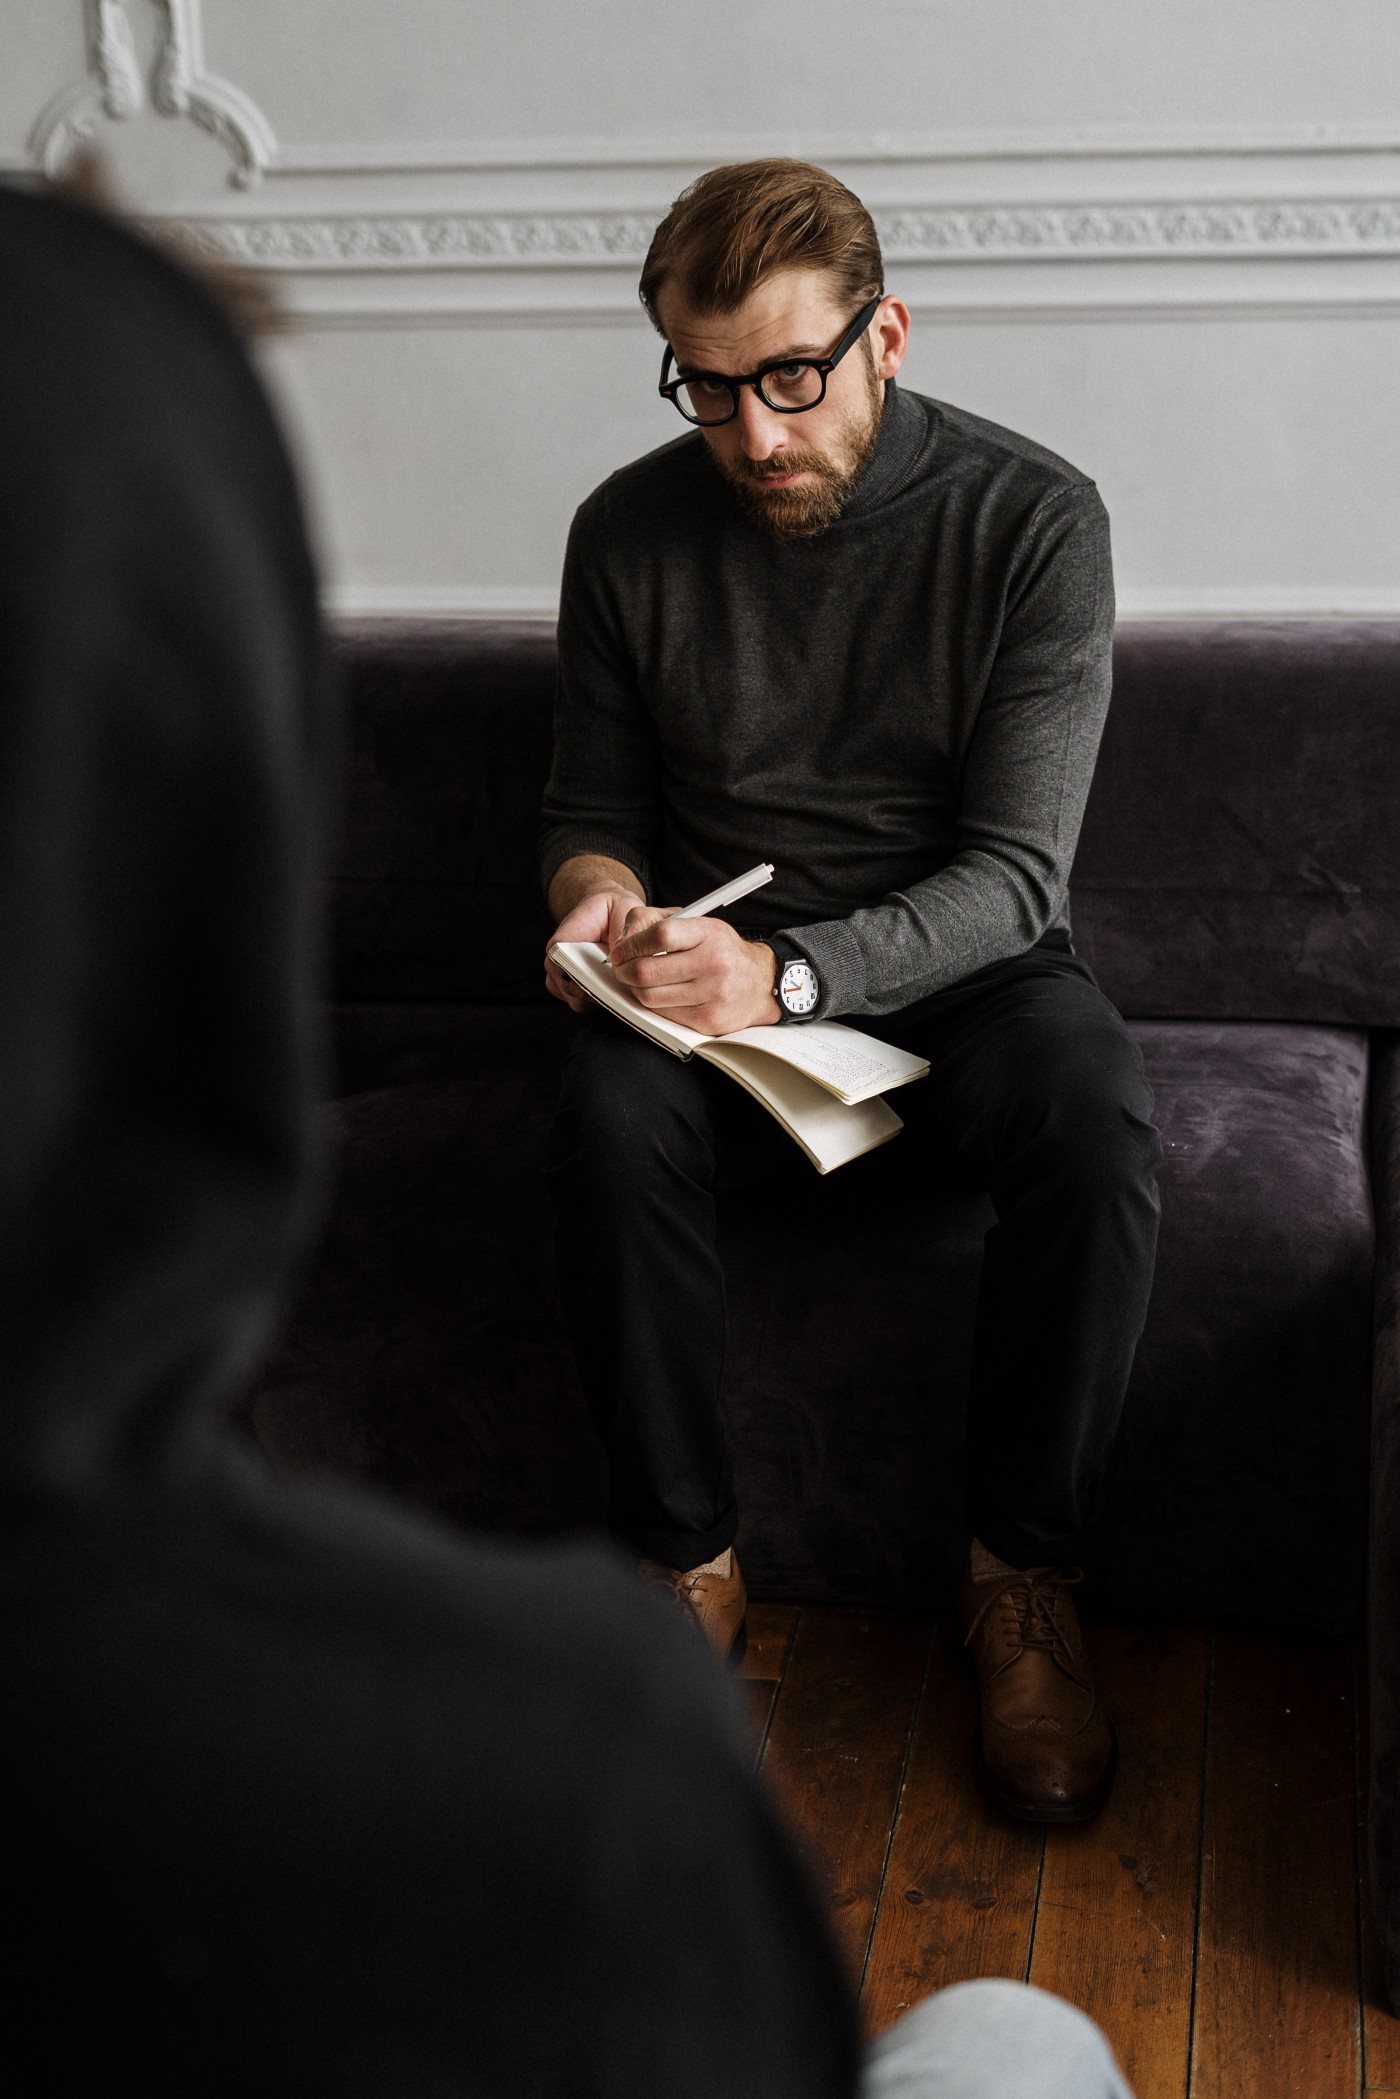 A bespectacled man takes notes as he sits on a plush couch in front of a person in a hoodie.